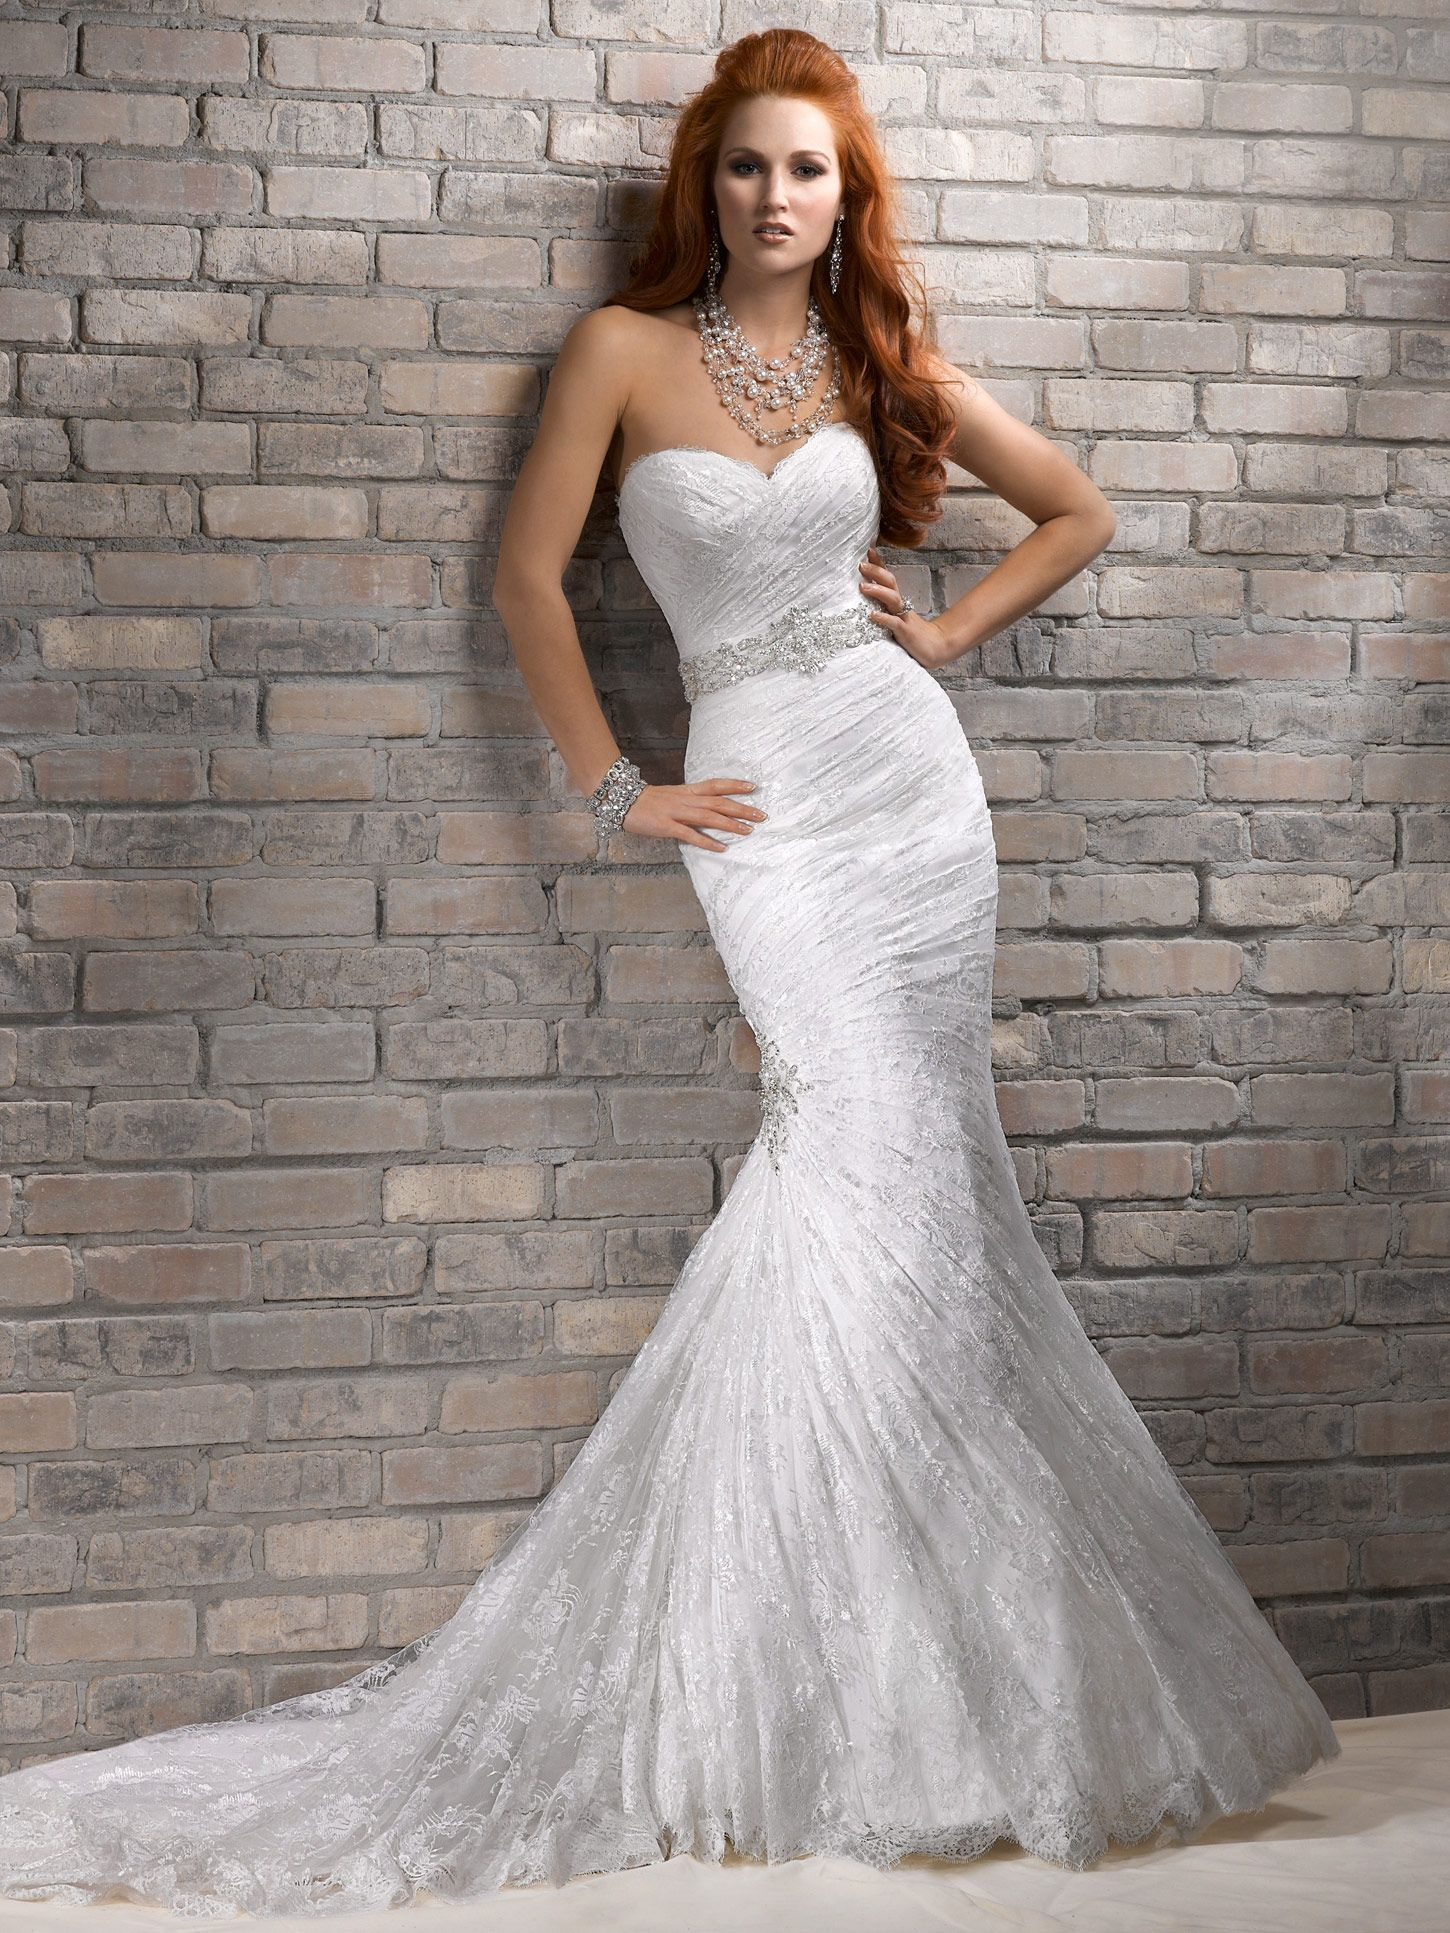 Wedding Mermaid Wedding Dress timeless mermaid wedding dress with strapless sweetheart bodice bodice